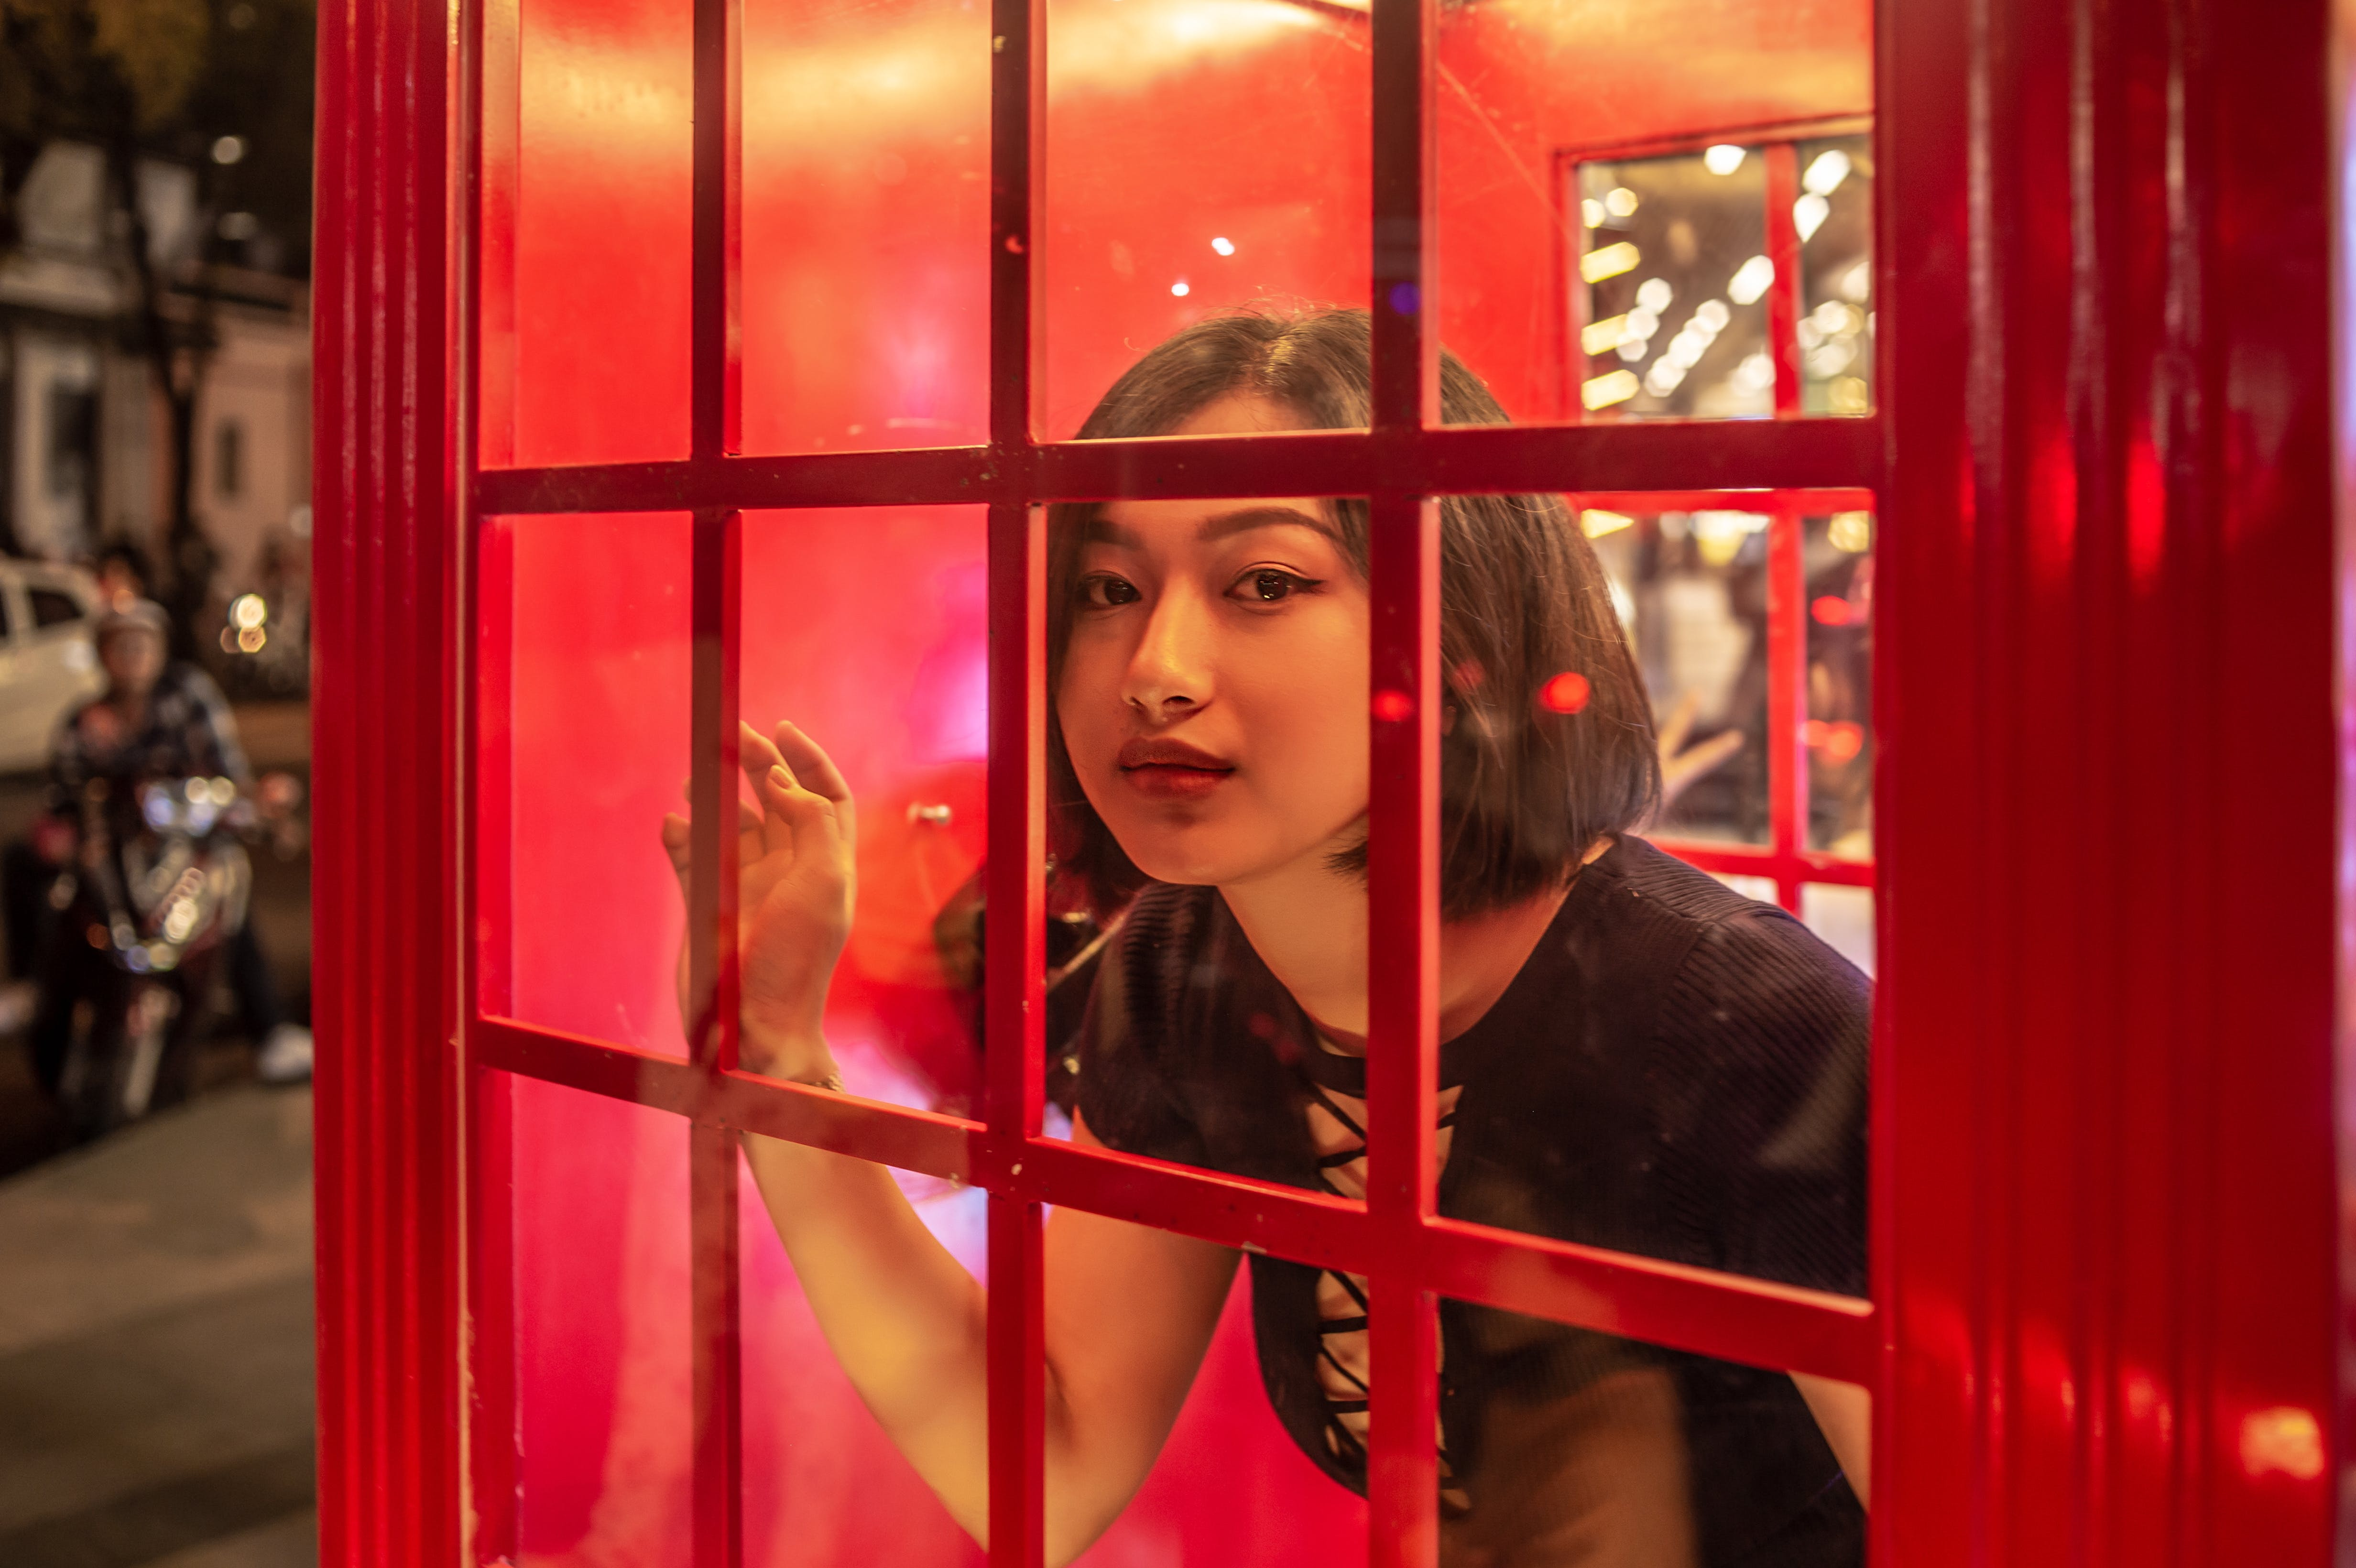 Woman Inside Red Telephone Booth